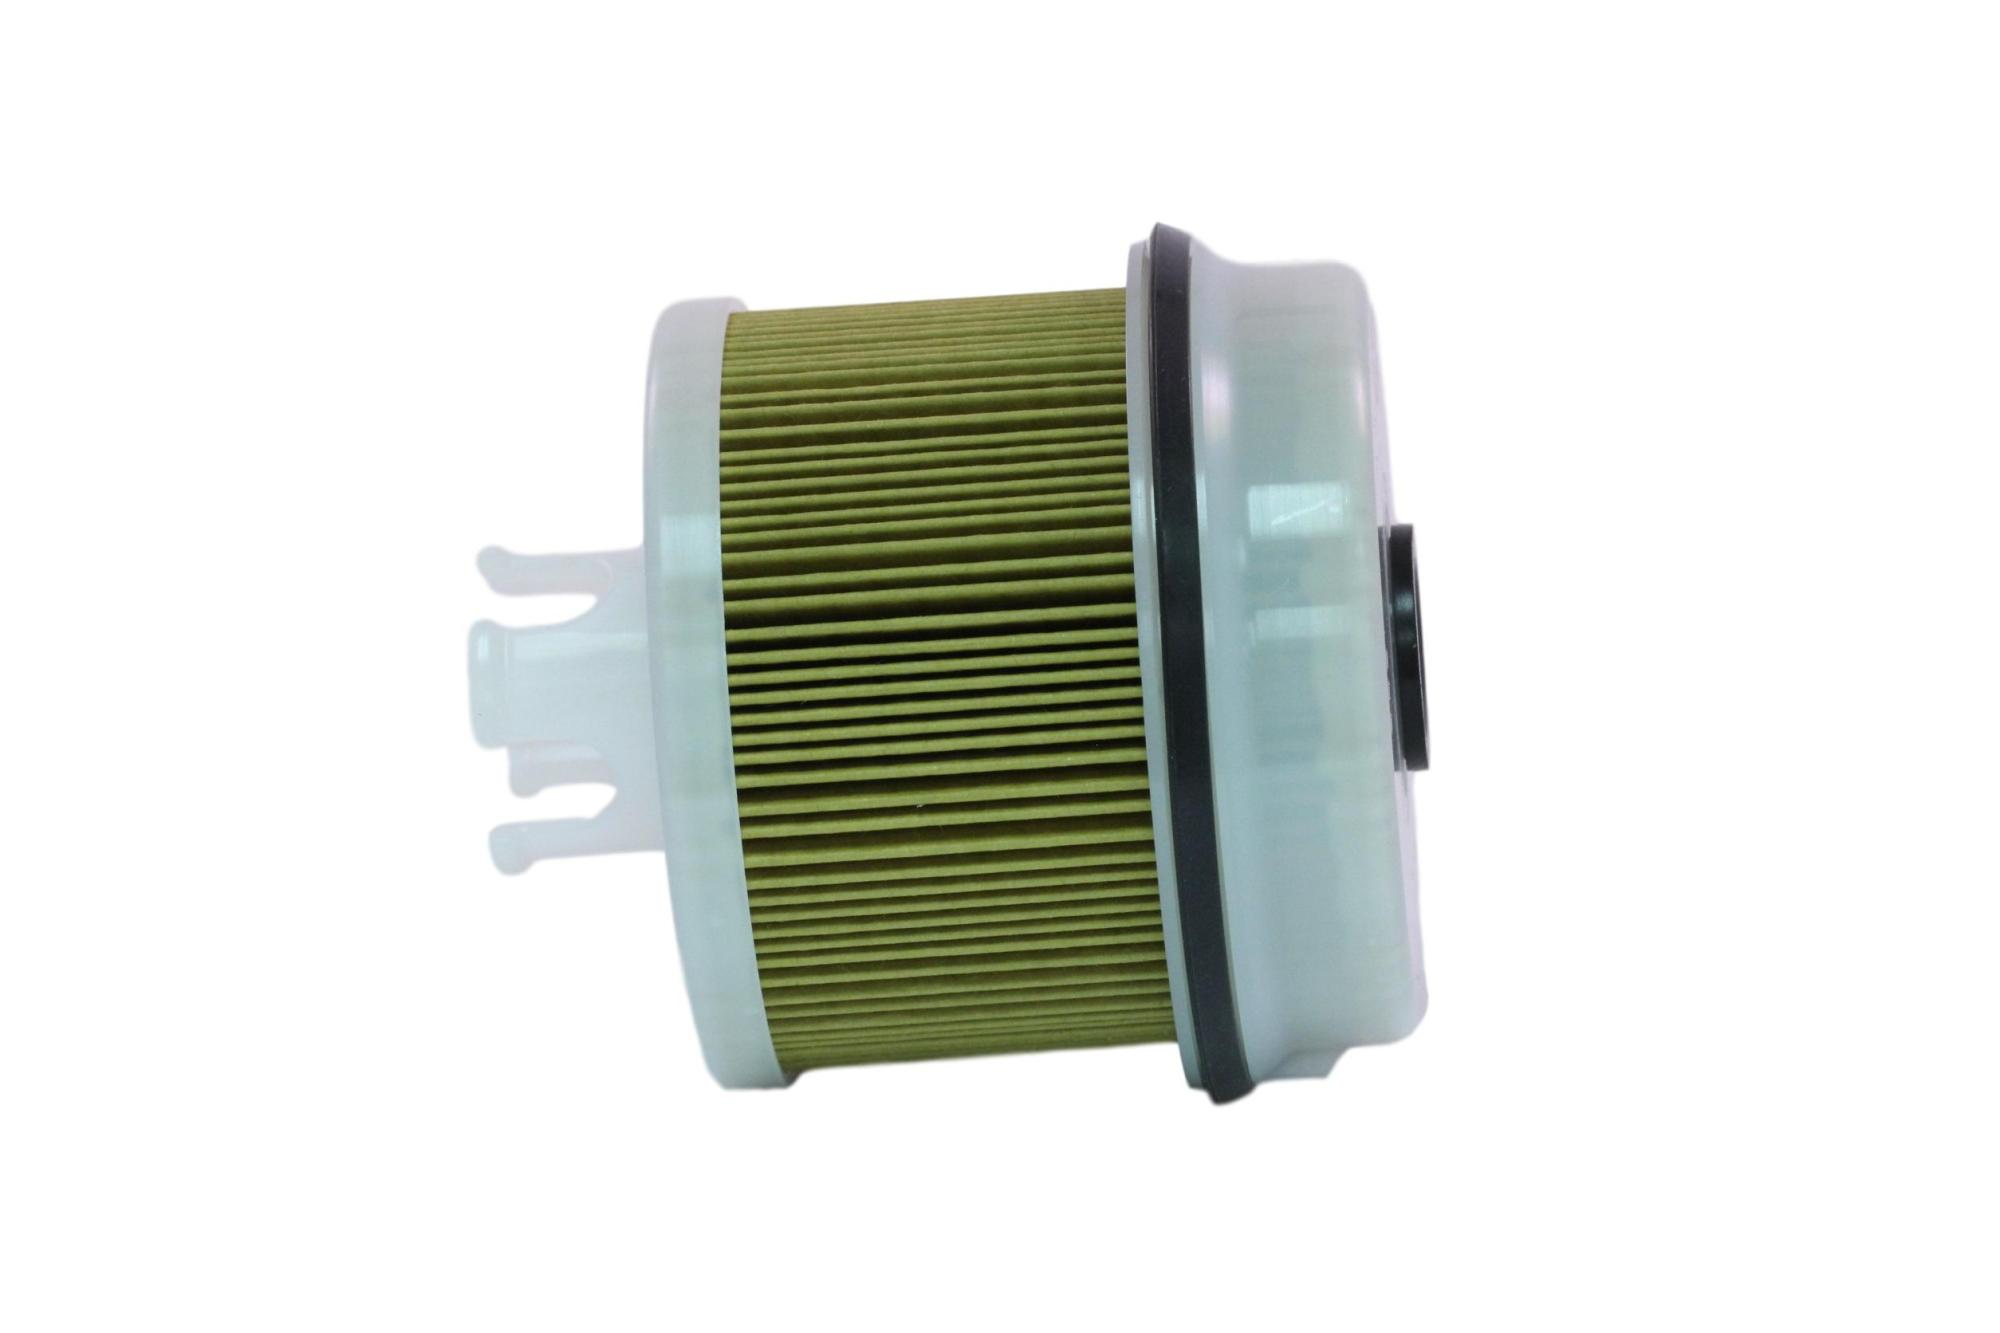 hight resolution of part number 23304 78091 element set fuel filter make hino